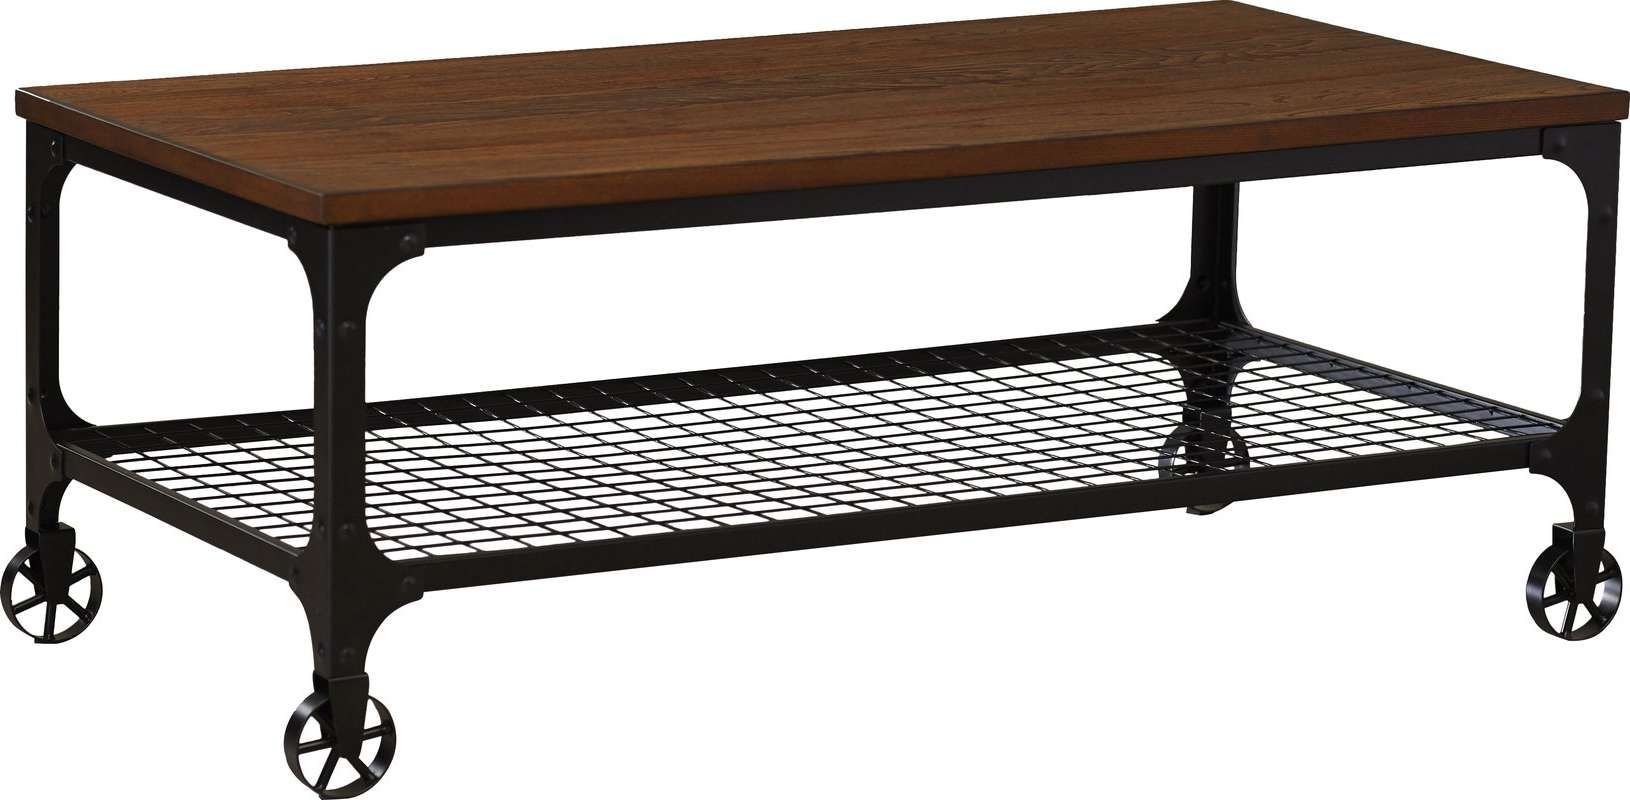 Mercury Row Corvus Rectangle Industrial Coffee Table & Reviews For Fashionable Industrial Coffee Tables (View 3 of 20)